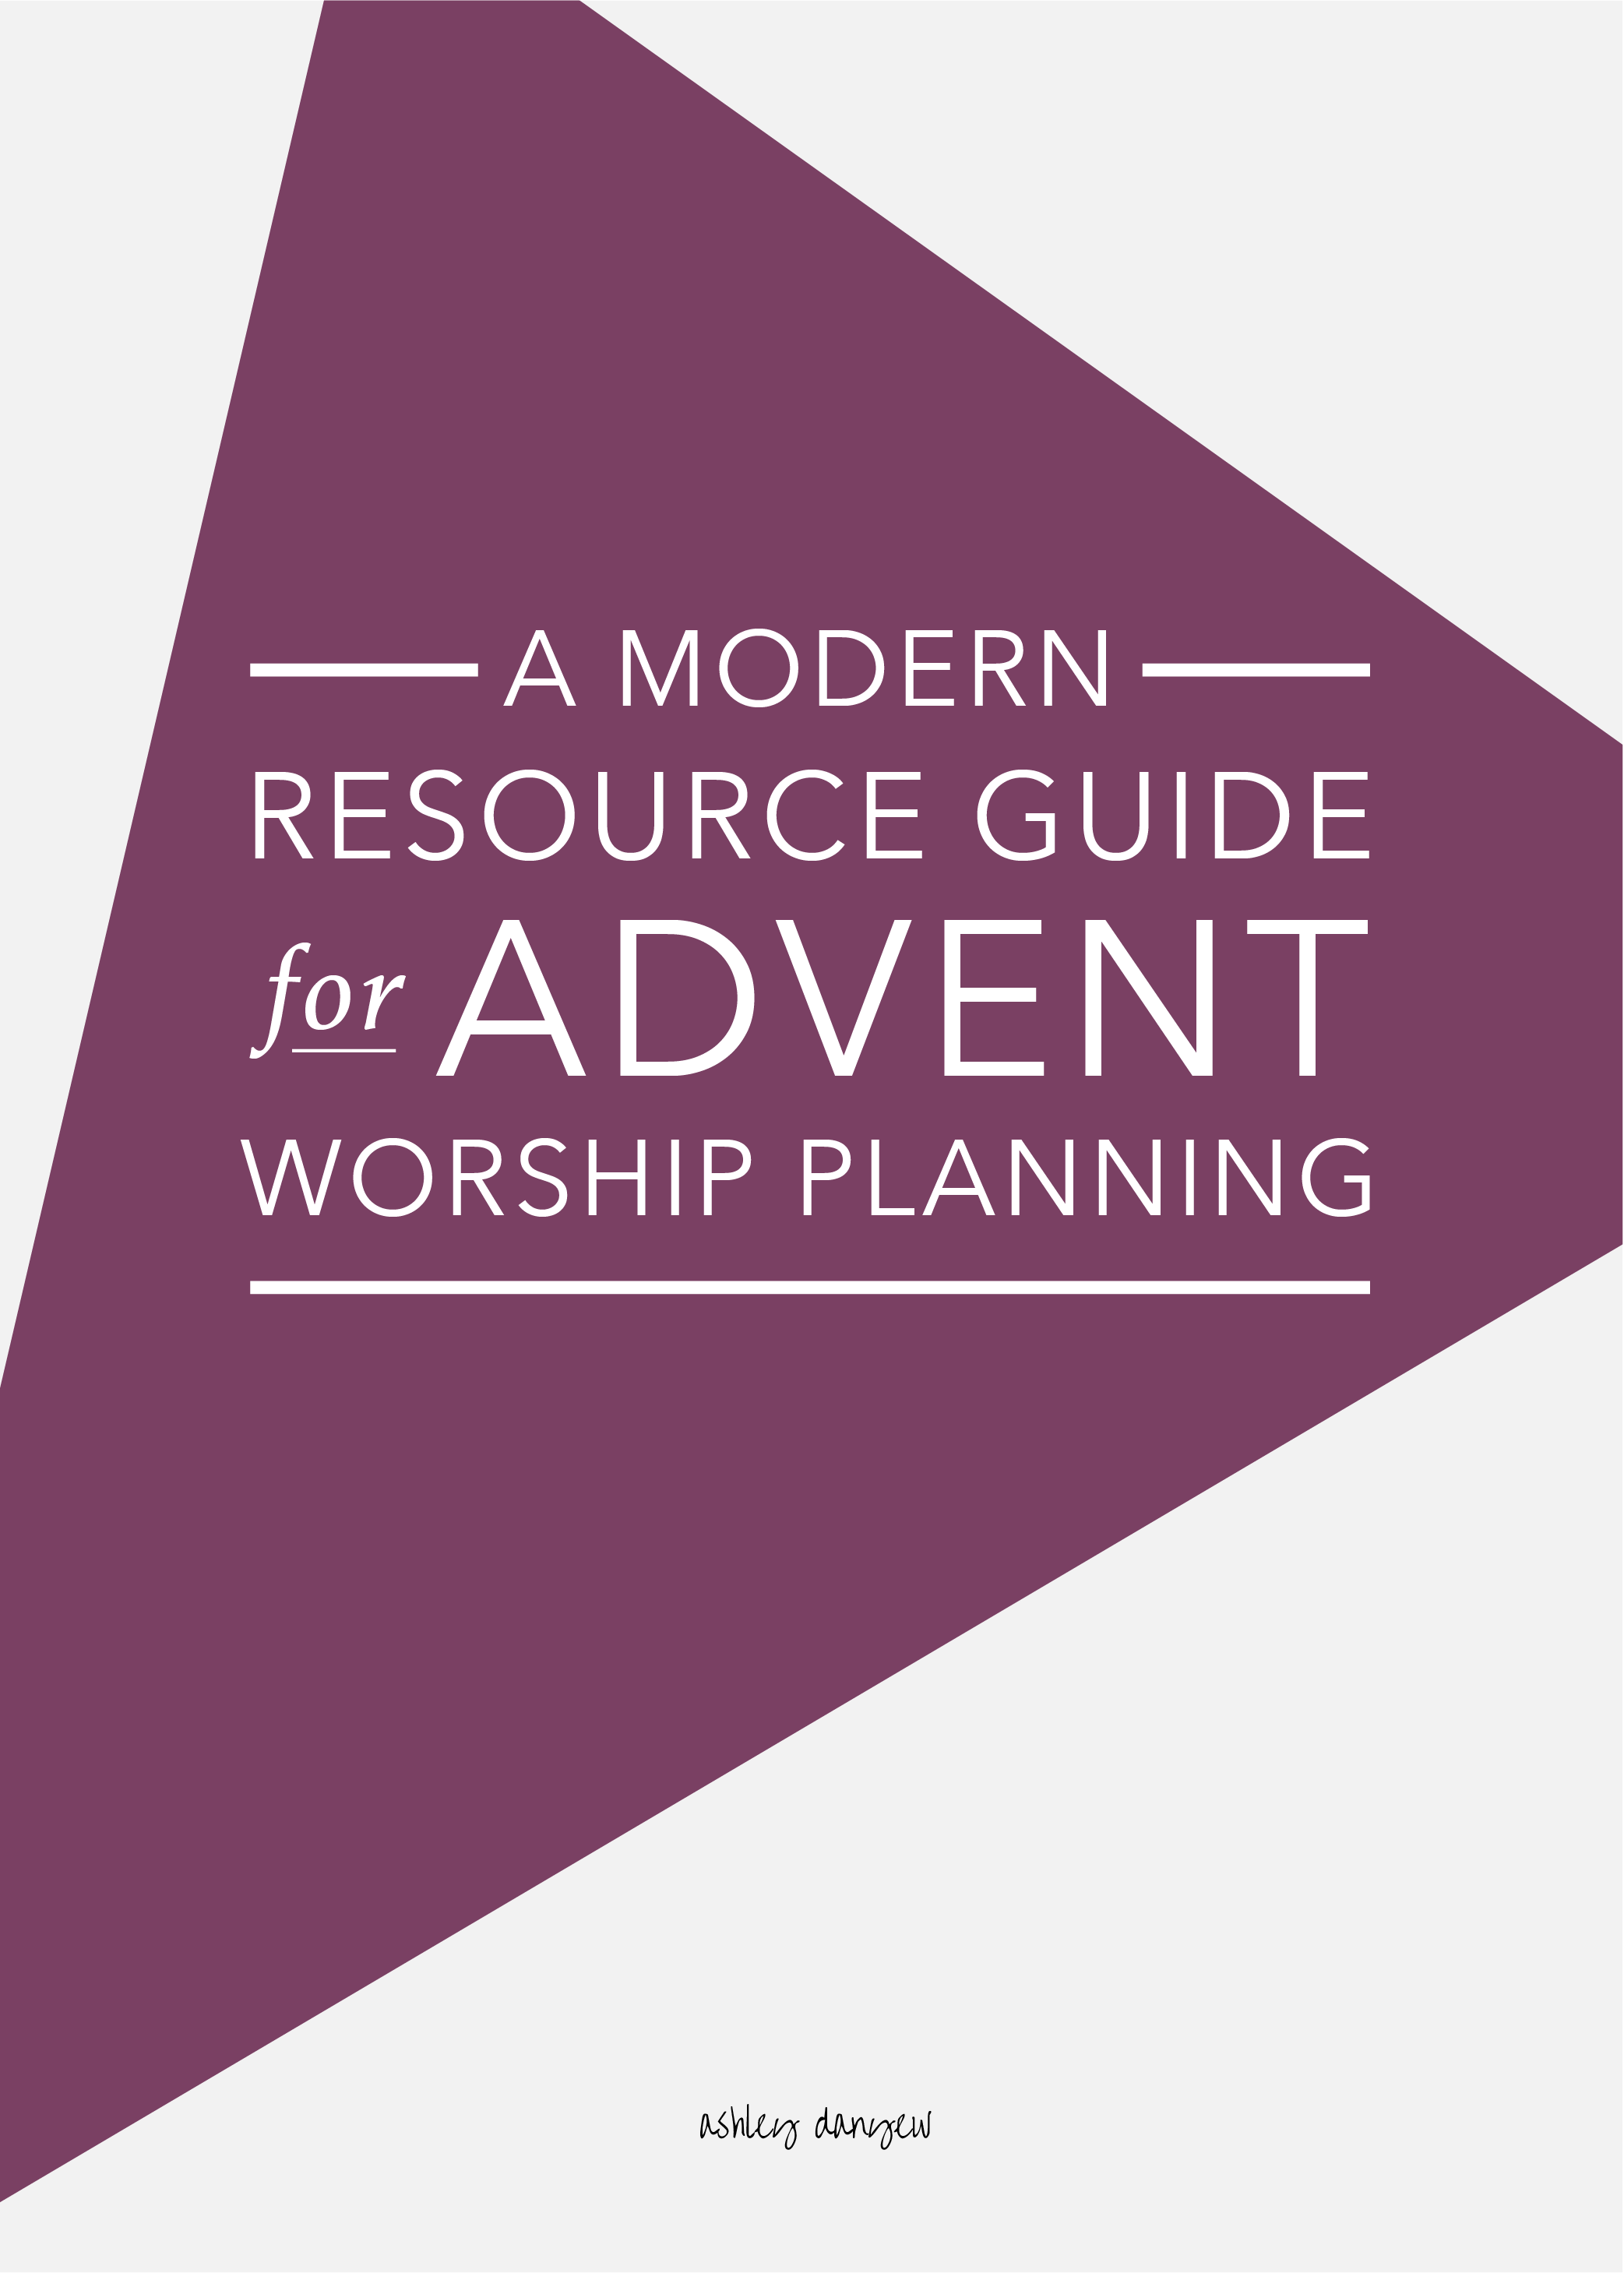 A Modern Resource Guide for Advent Worship Planning-60.png